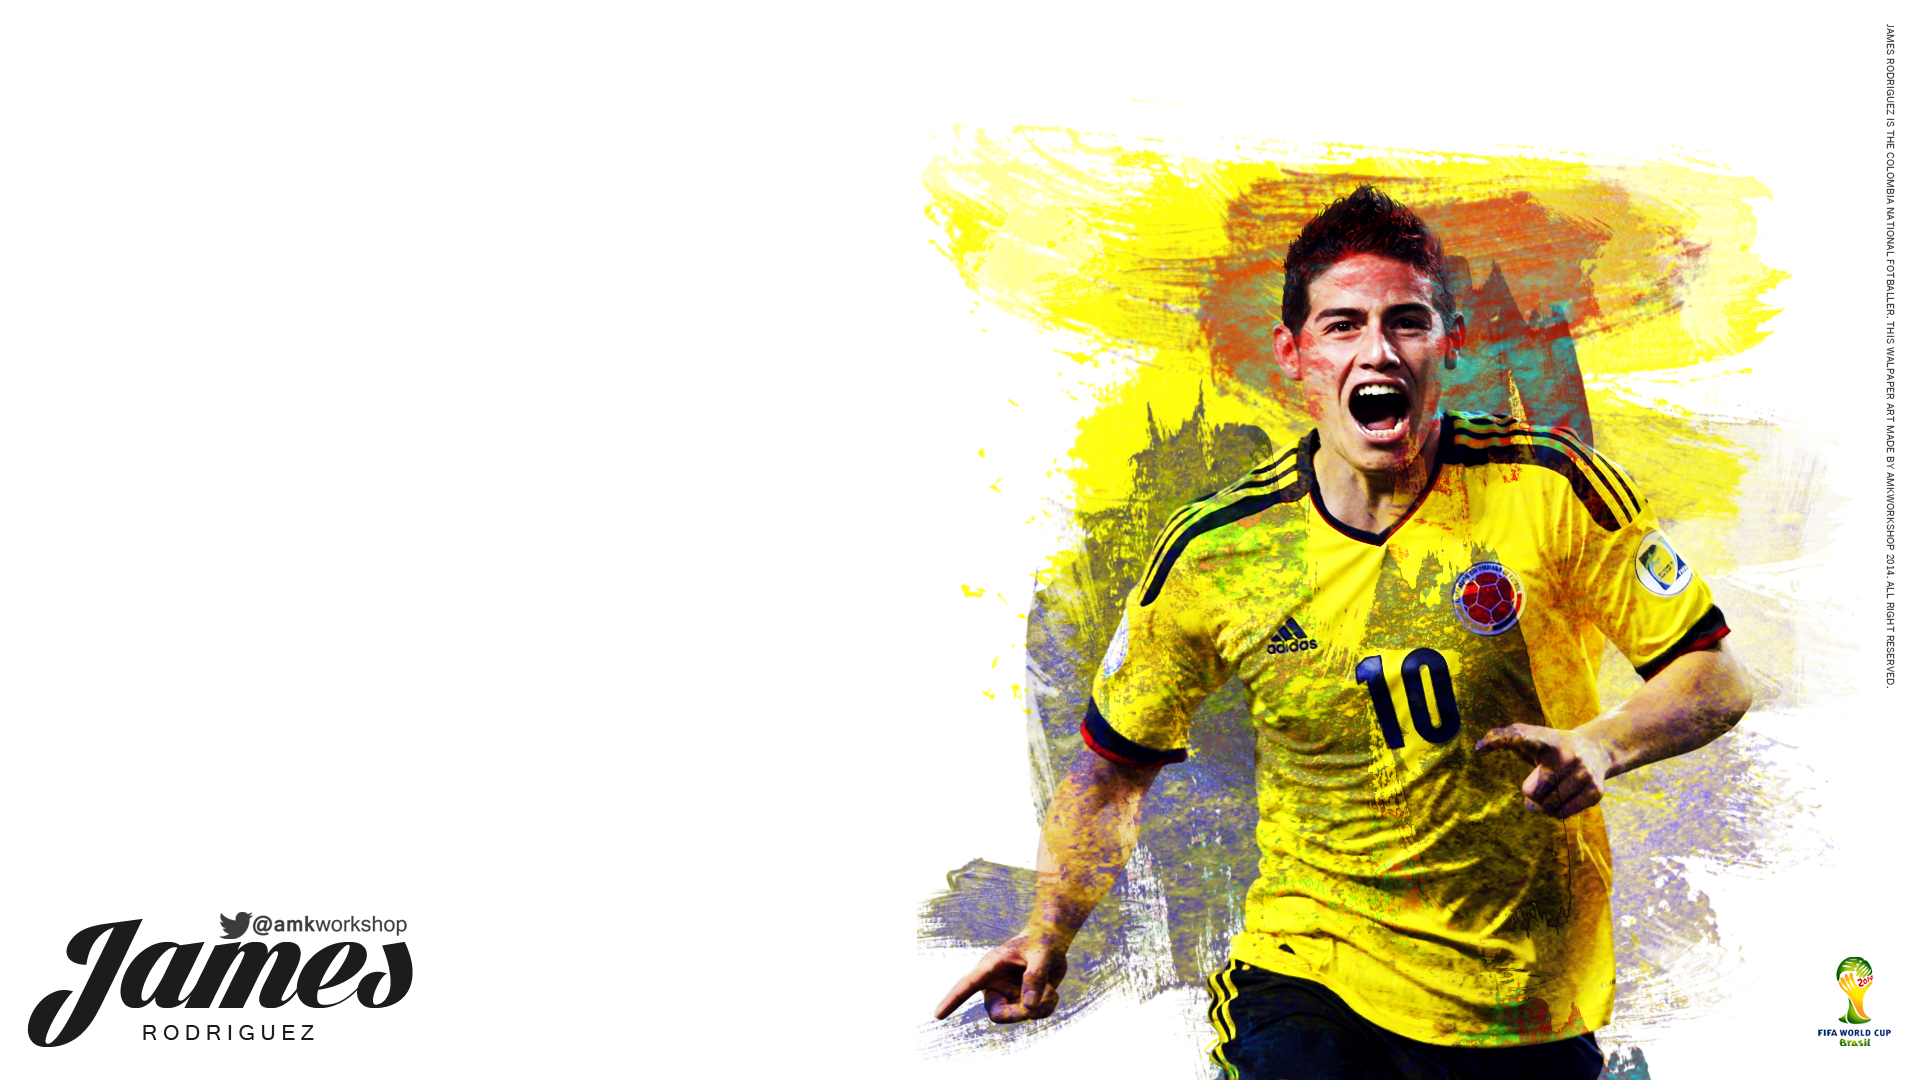 James rodriguez wallpaper - James rodriguez wallpaper hd ...